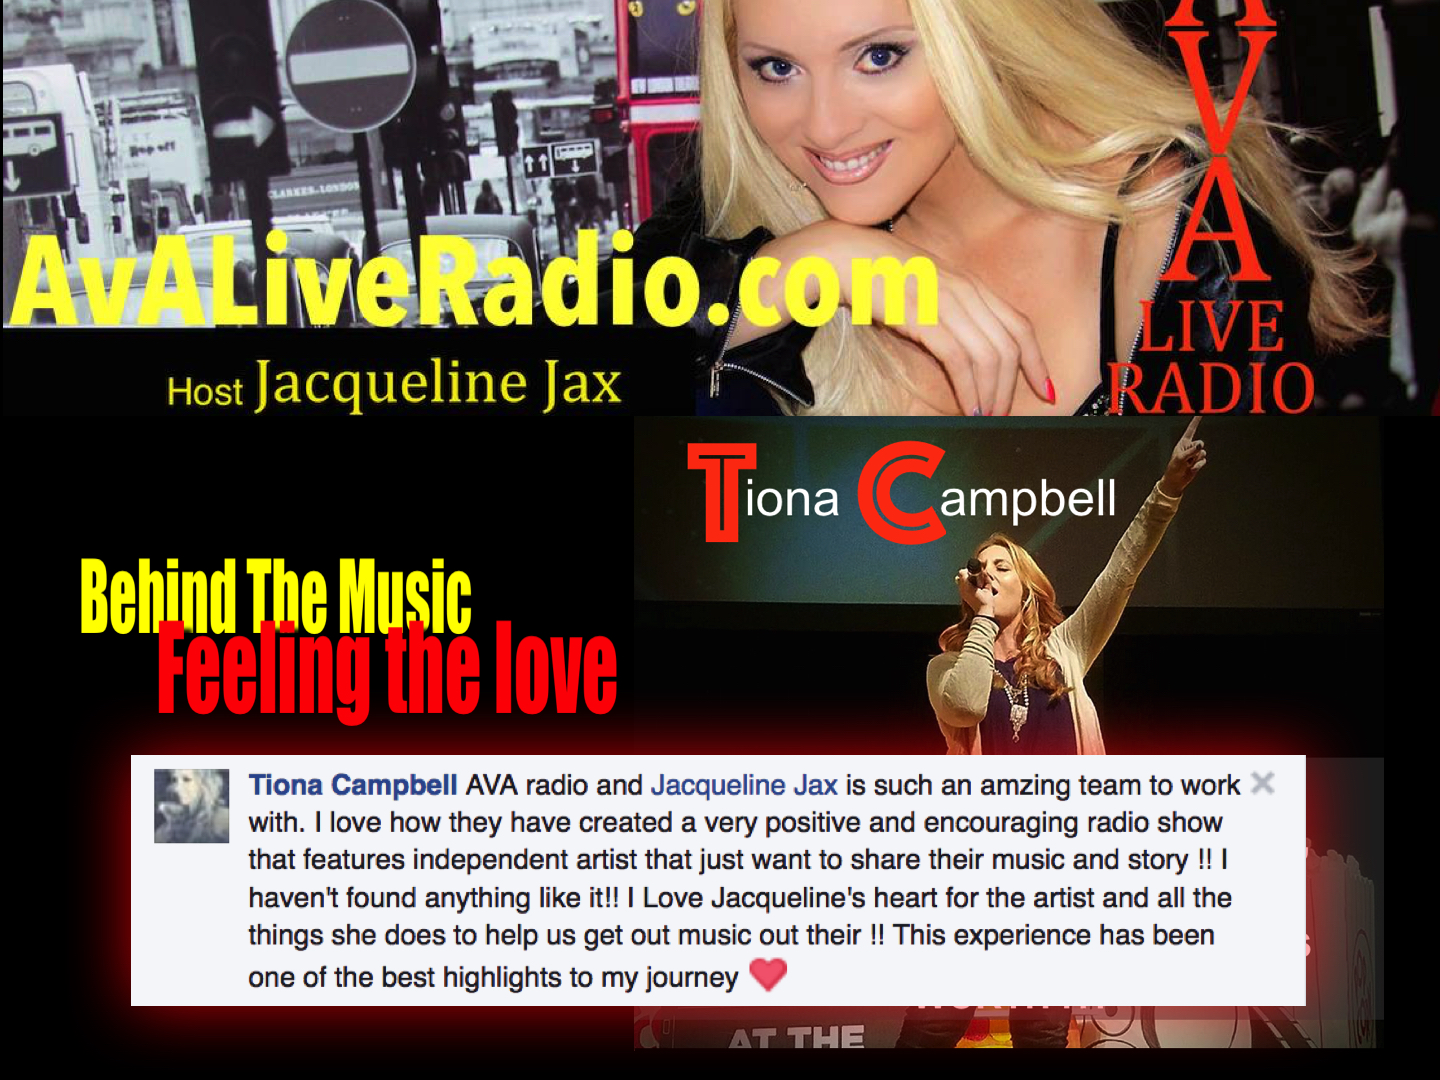 Tiona Campbell feedback avaliveradio.jpg